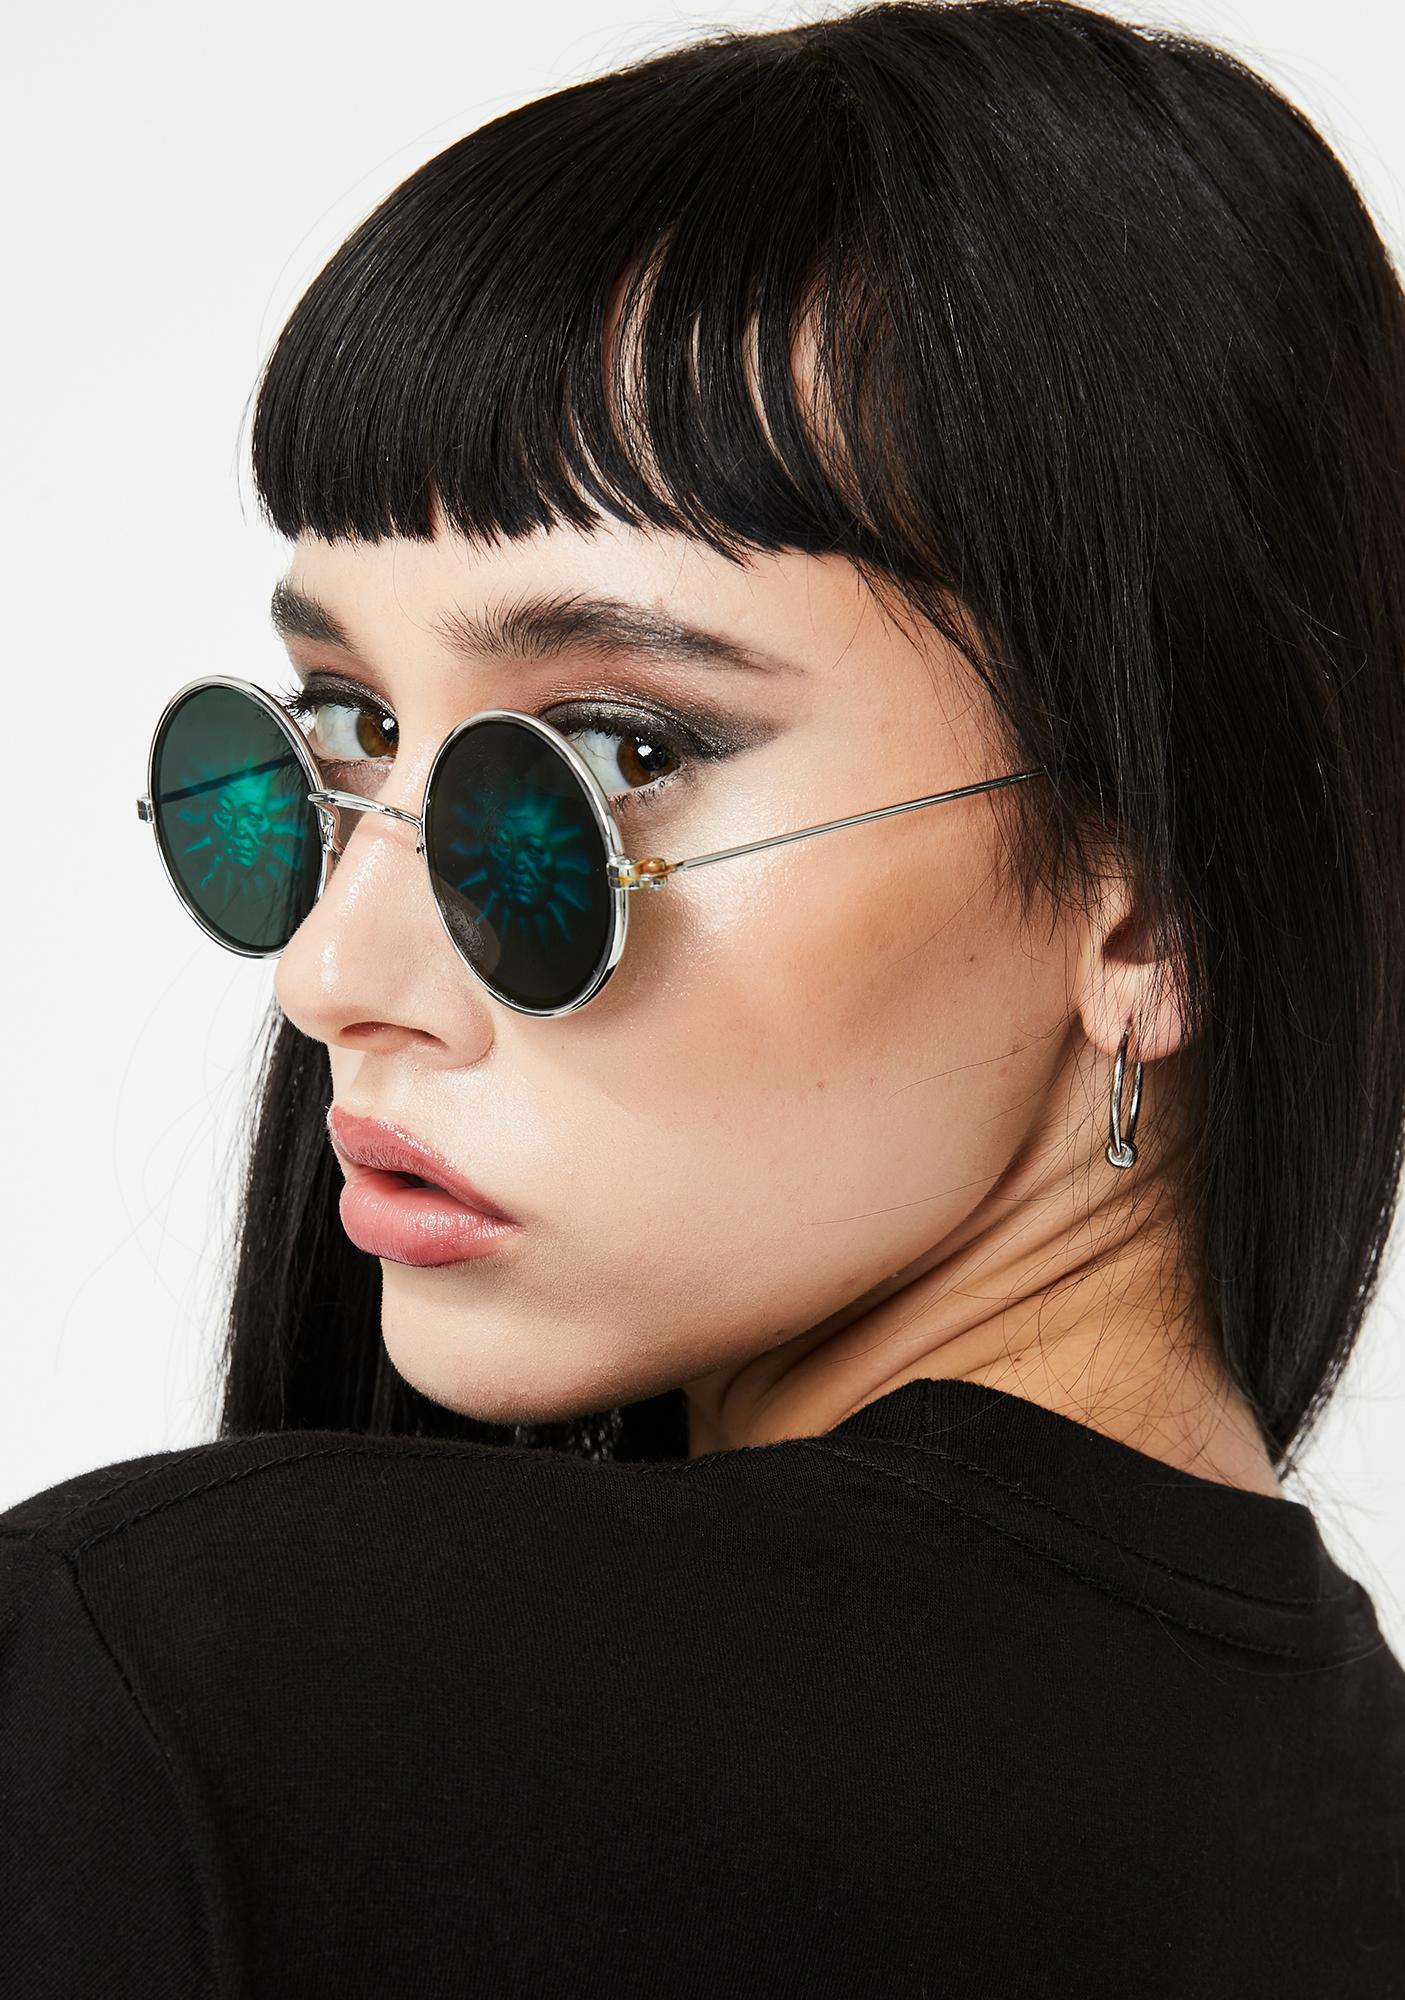 Replay Vintage Sunglasses Saw The Sun Hologram Sunglasses